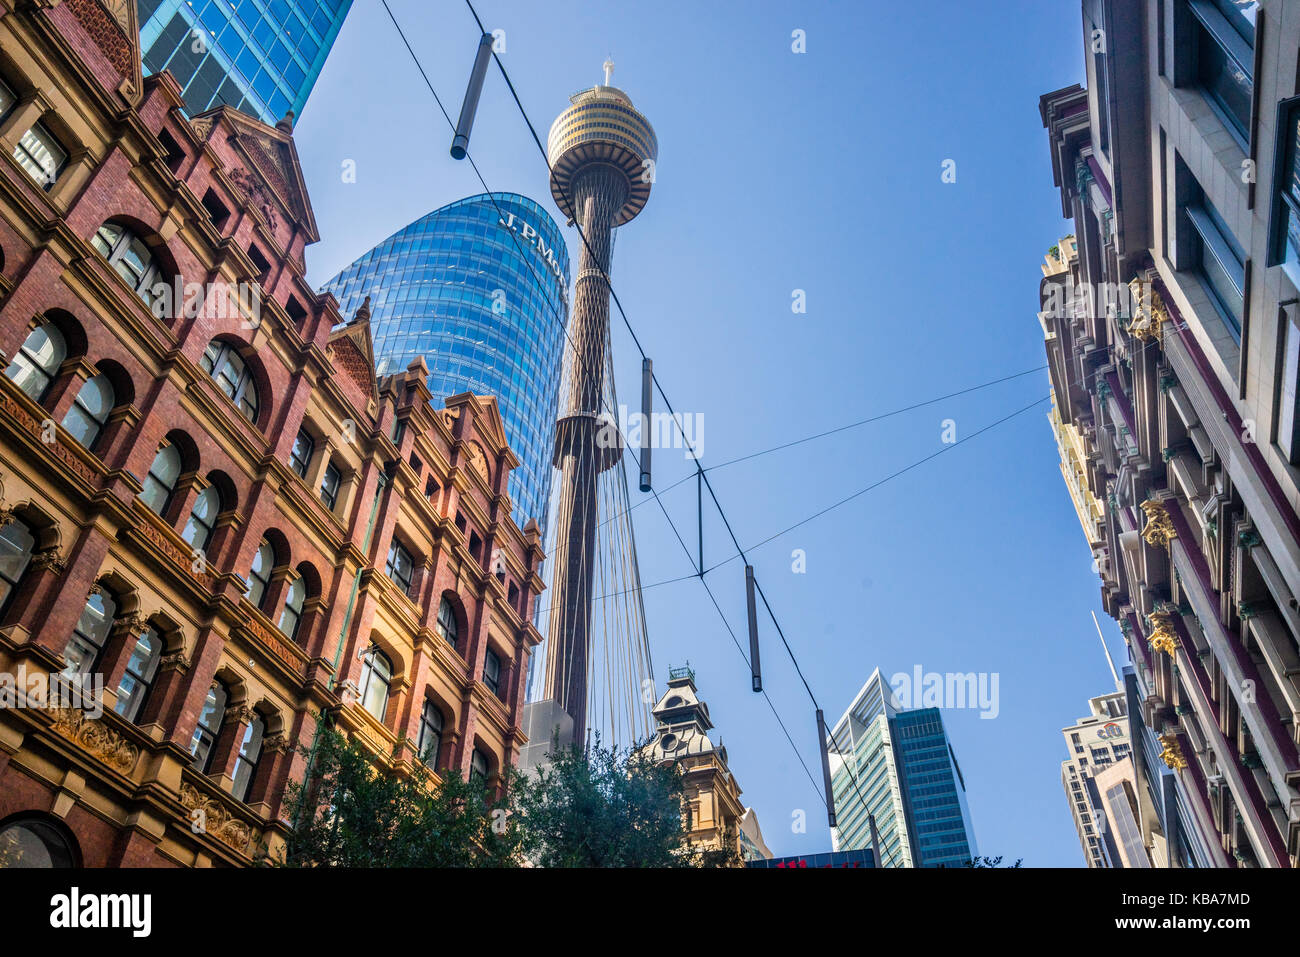 Australia, New South Wales, Sydney, view of Sydney Tower from Pitt Street, with 309 metres Sydney's tallest - Stock Image